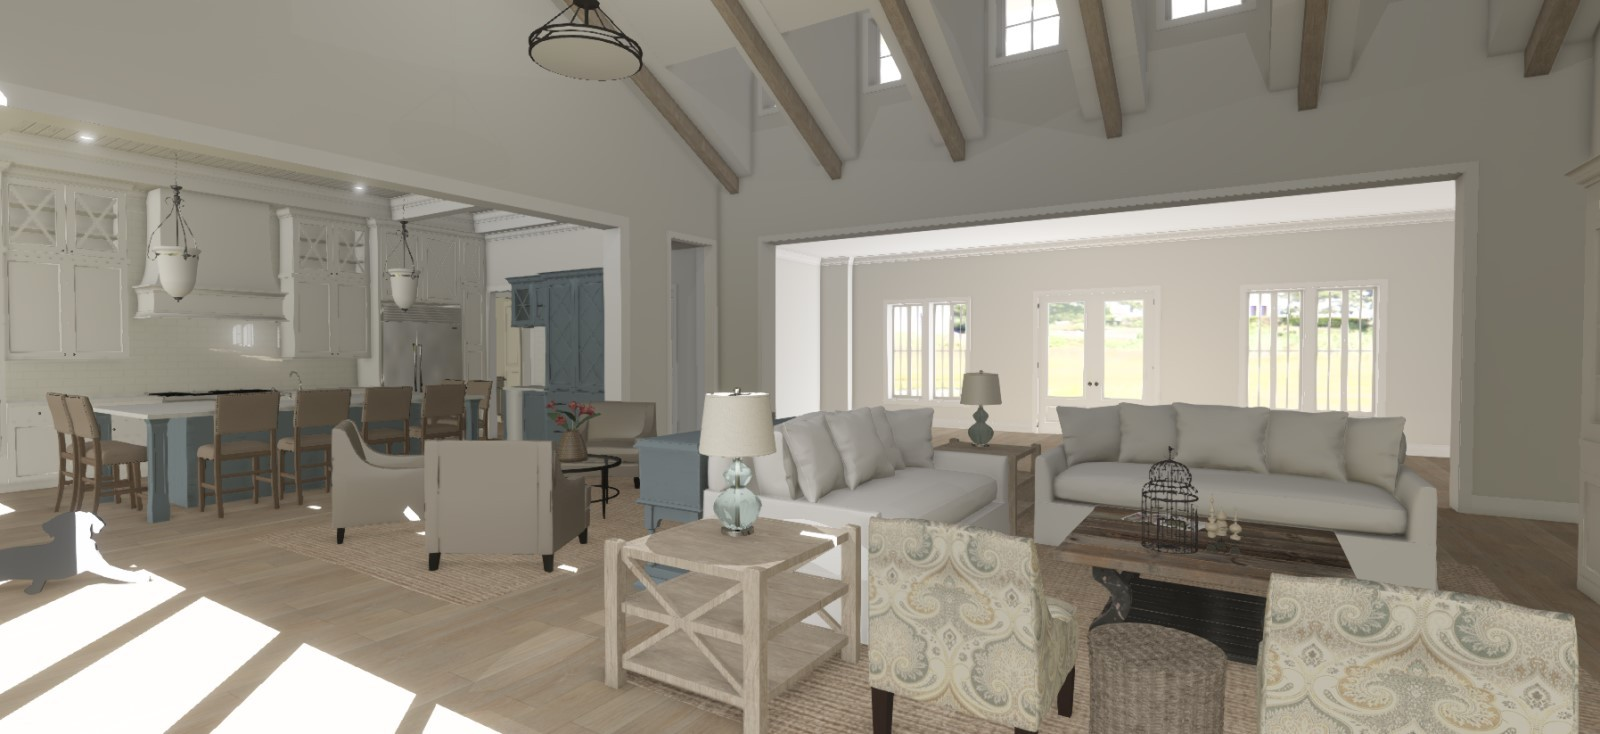 Open living area with vaulted ceiling and exposed trusses